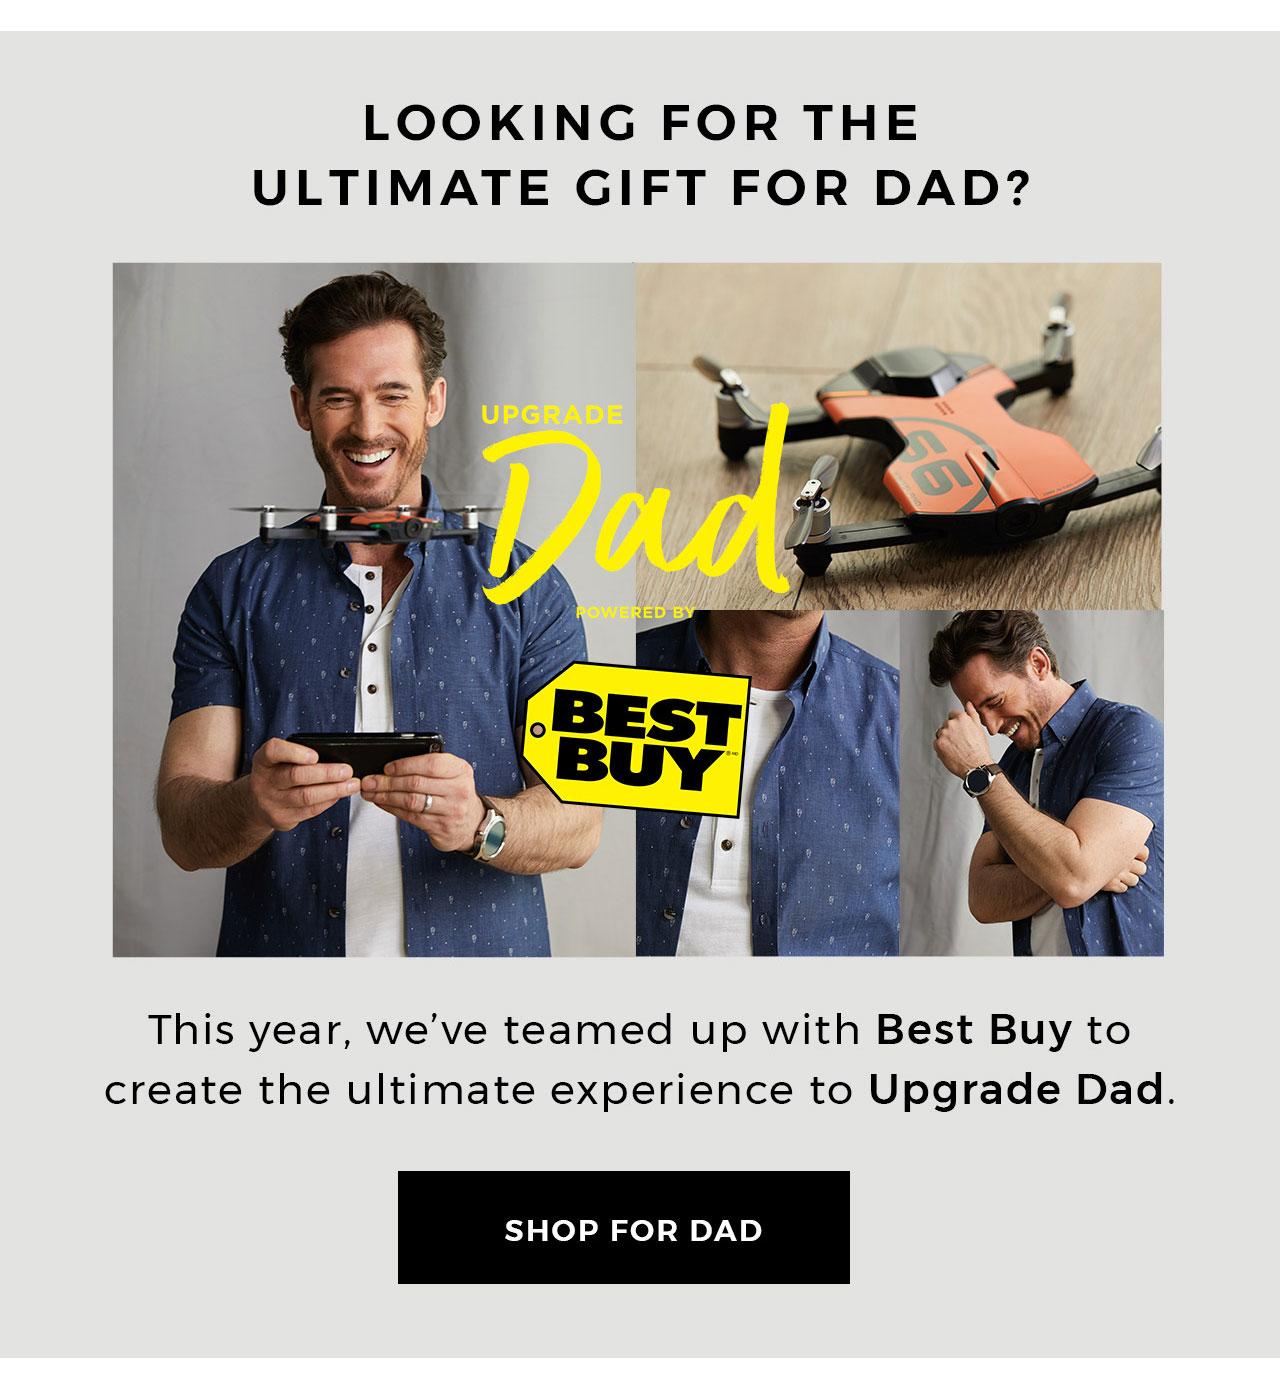 Looking for the ultimate gift for dad? This year we've teamed up with Best Buy to create the ultimate experience to Upgrade Dad. Shop for Dad.